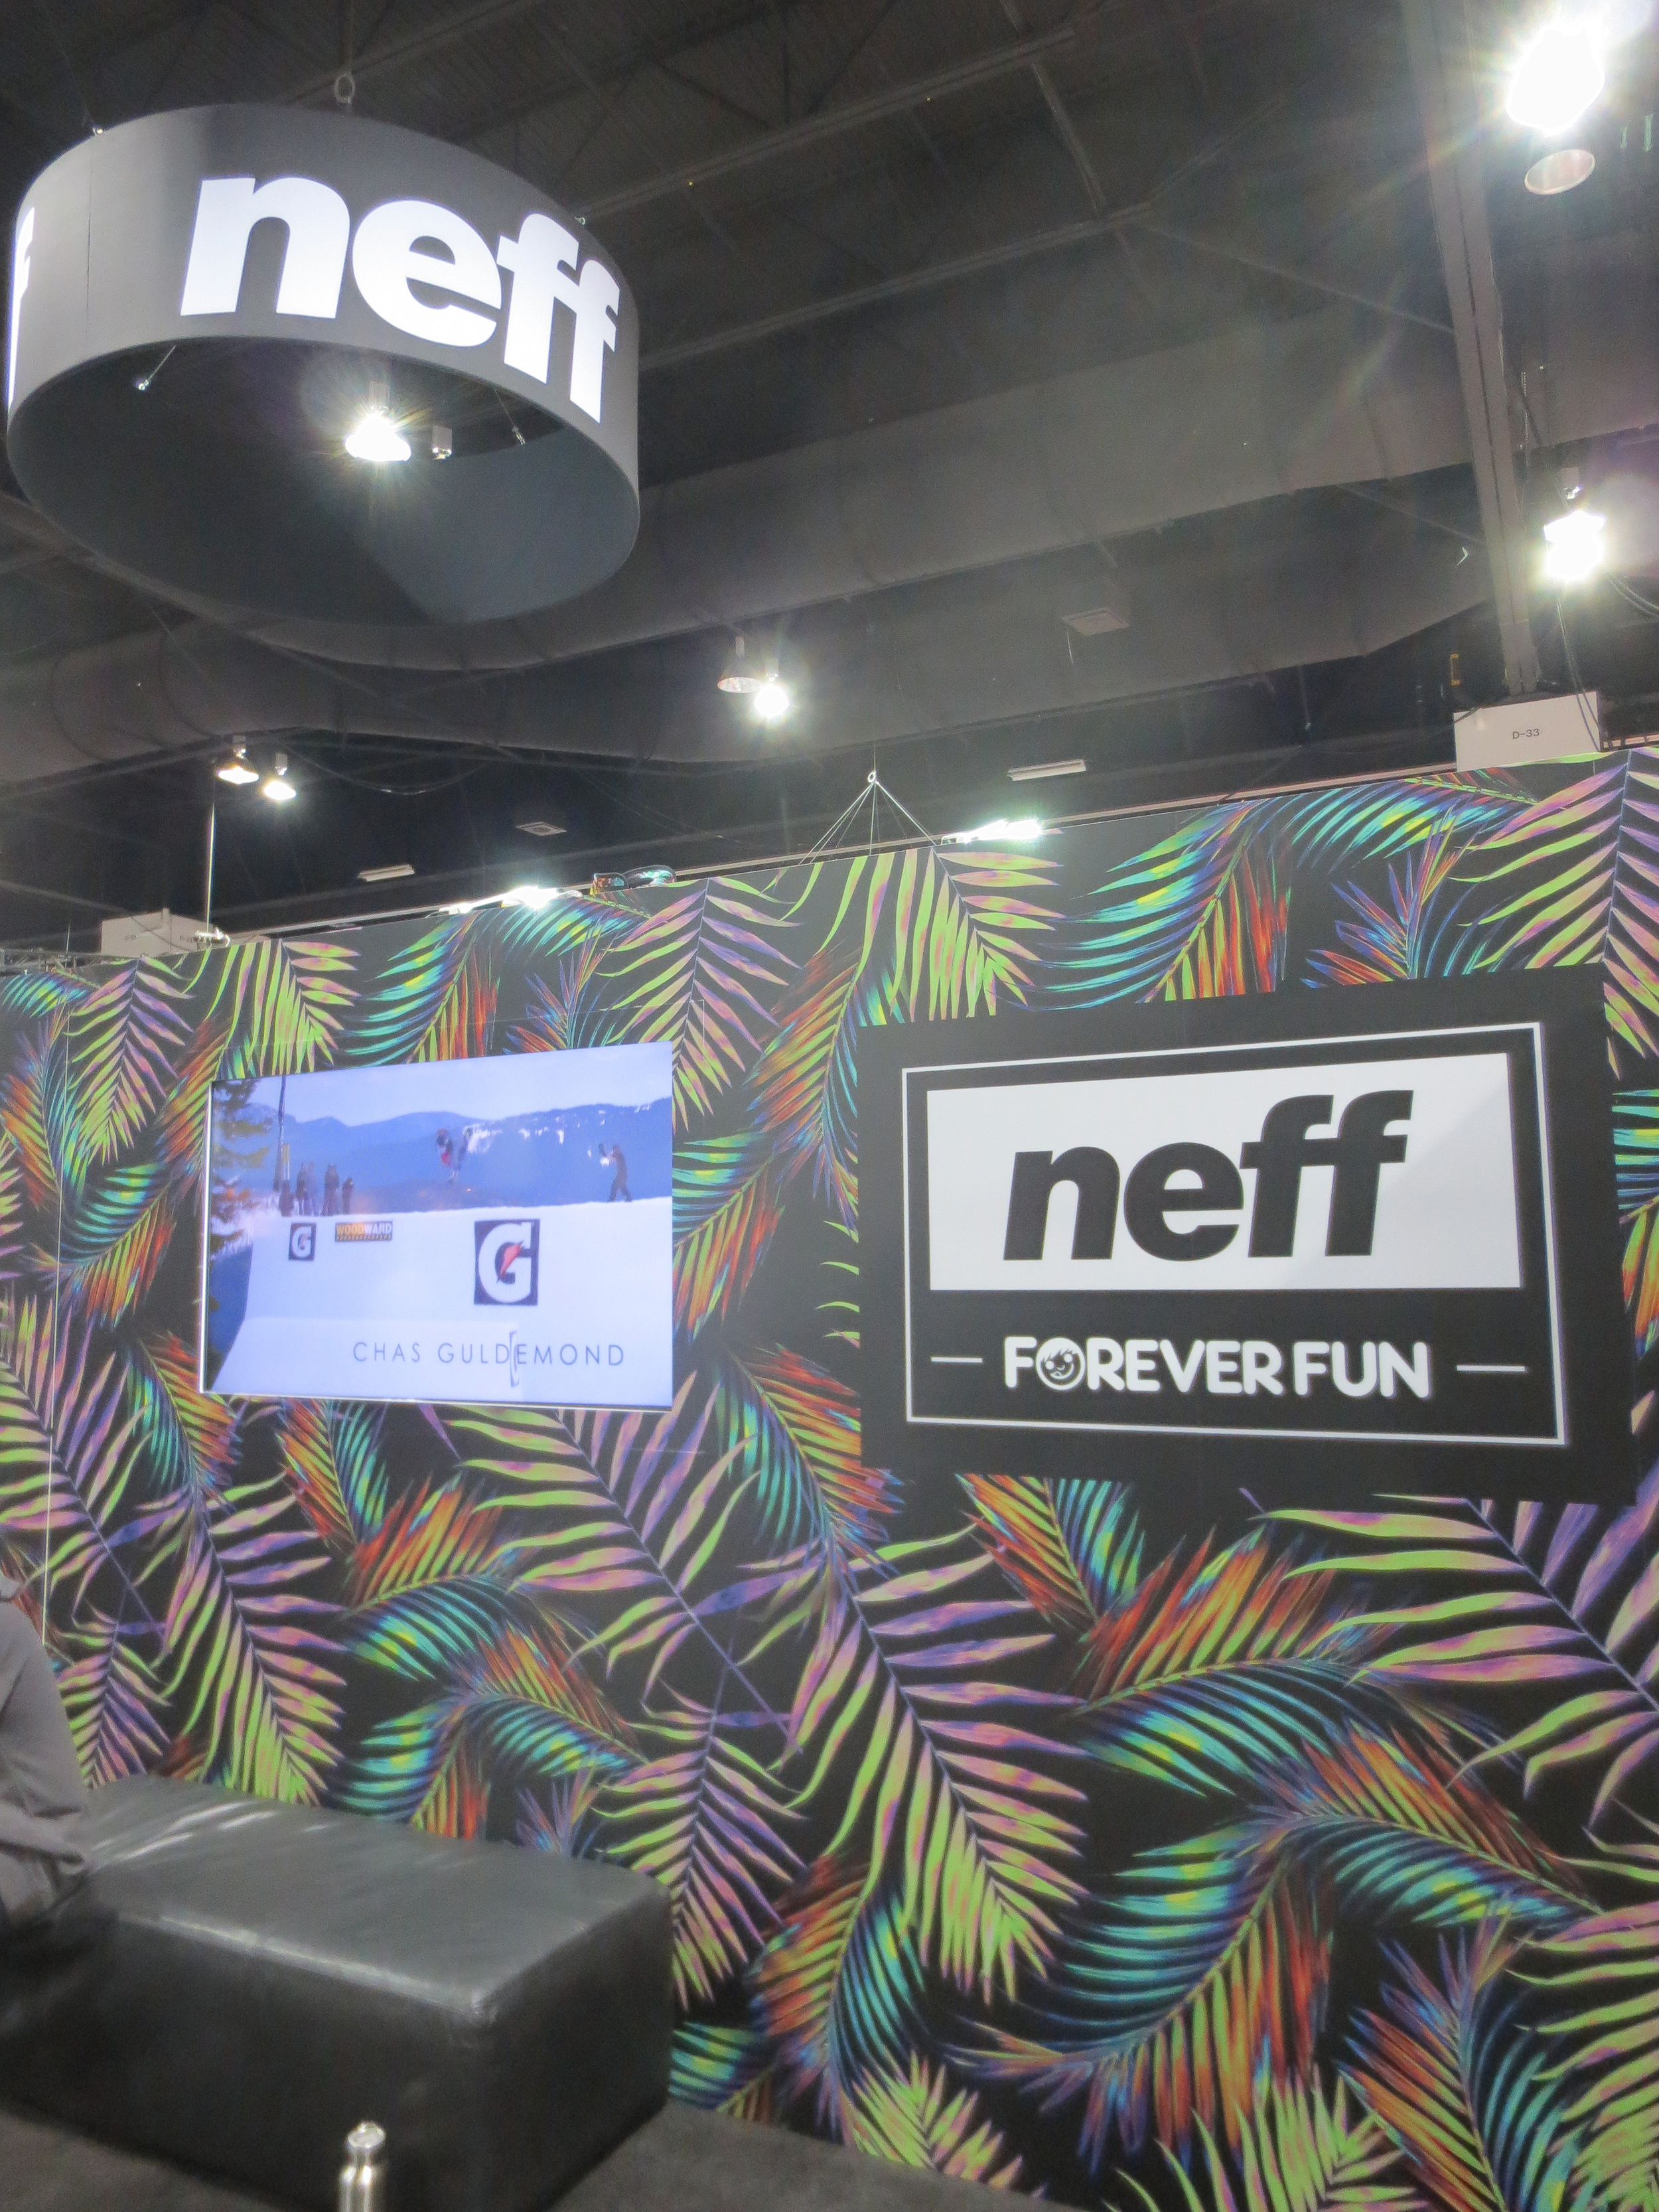 As expected, Neff had one of the more colorful booths at SIA.